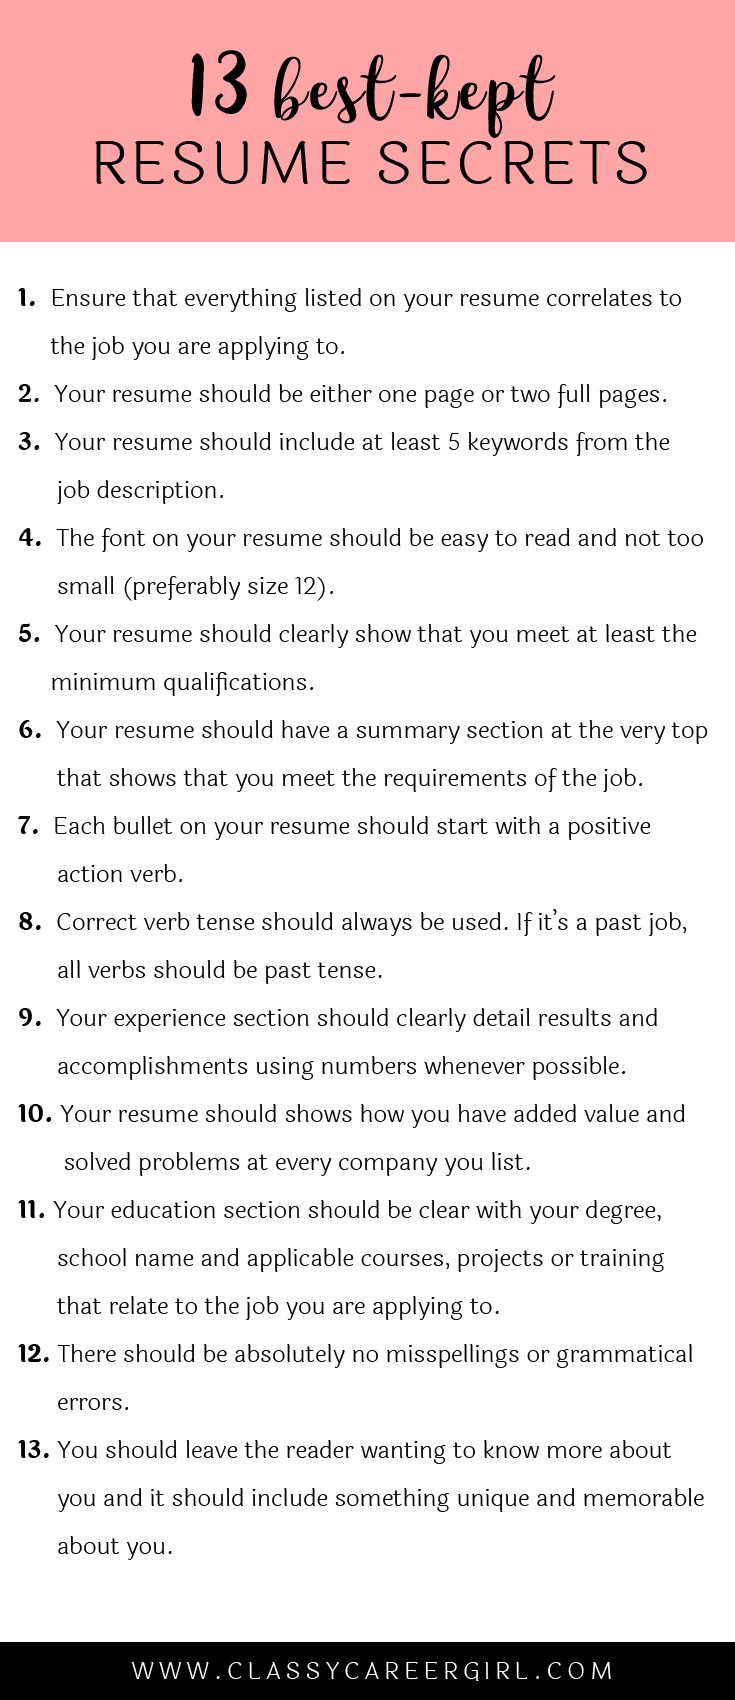 Opposenewapstandardsus  Personable  Ideas About Resume On Pinterest  Cv Format Resume  With Remarkable Some Hiring Managers Will Toss Your Resume Out If You Dont Know These  With Awesome Cvs Resume Also Can Resumes Be  Pages In Addition Skills Summary Resume And What Font Should My Resume Be In As Well As School Psychologist Resume Additionally Narrative Resume From Pinterestcom With Opposenewapstandardsus  Remarkable  Ideas About Resume On Pinterest  Cv Format Resume  With Awesome Some Hiring Managers Will Toss Your Resume Out If You Dont Know These  And Personable Cvs Resume Also Can Resumes Be  Pages In Addition Skills Summary Resume From Pinterestcom